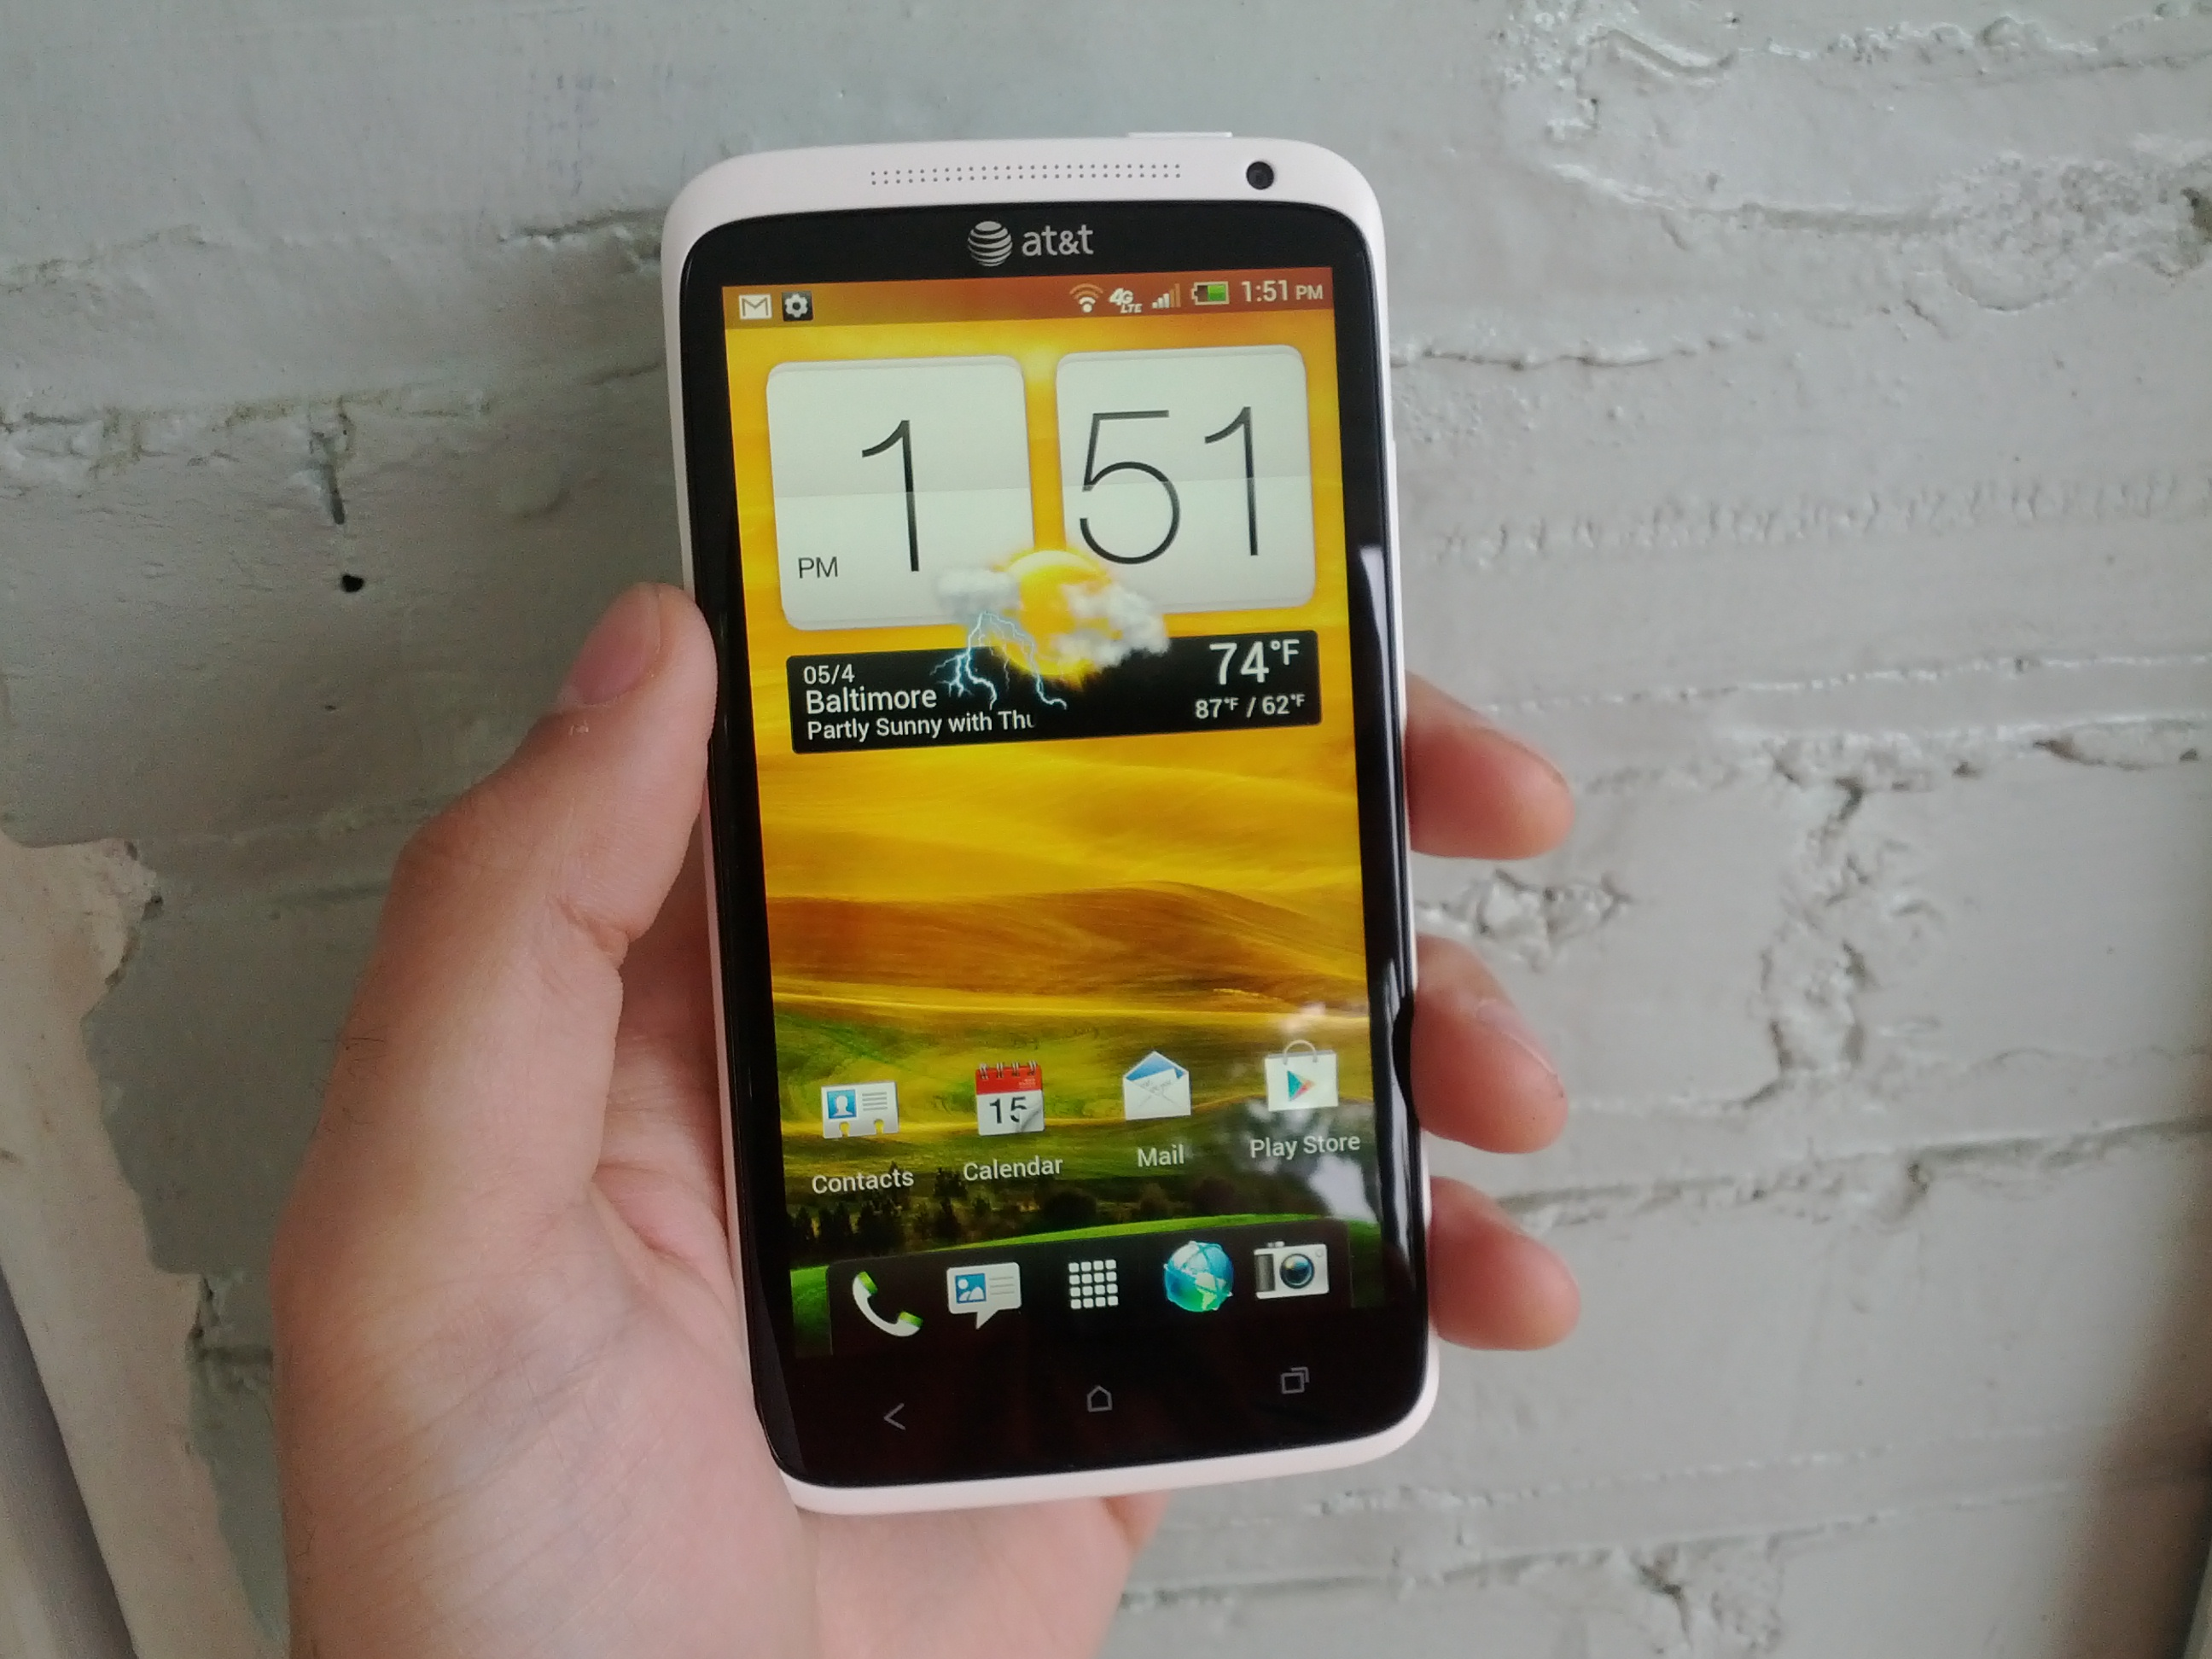 htc one x at t review rh phandroid com HTC One Max AT&T HTC One VX